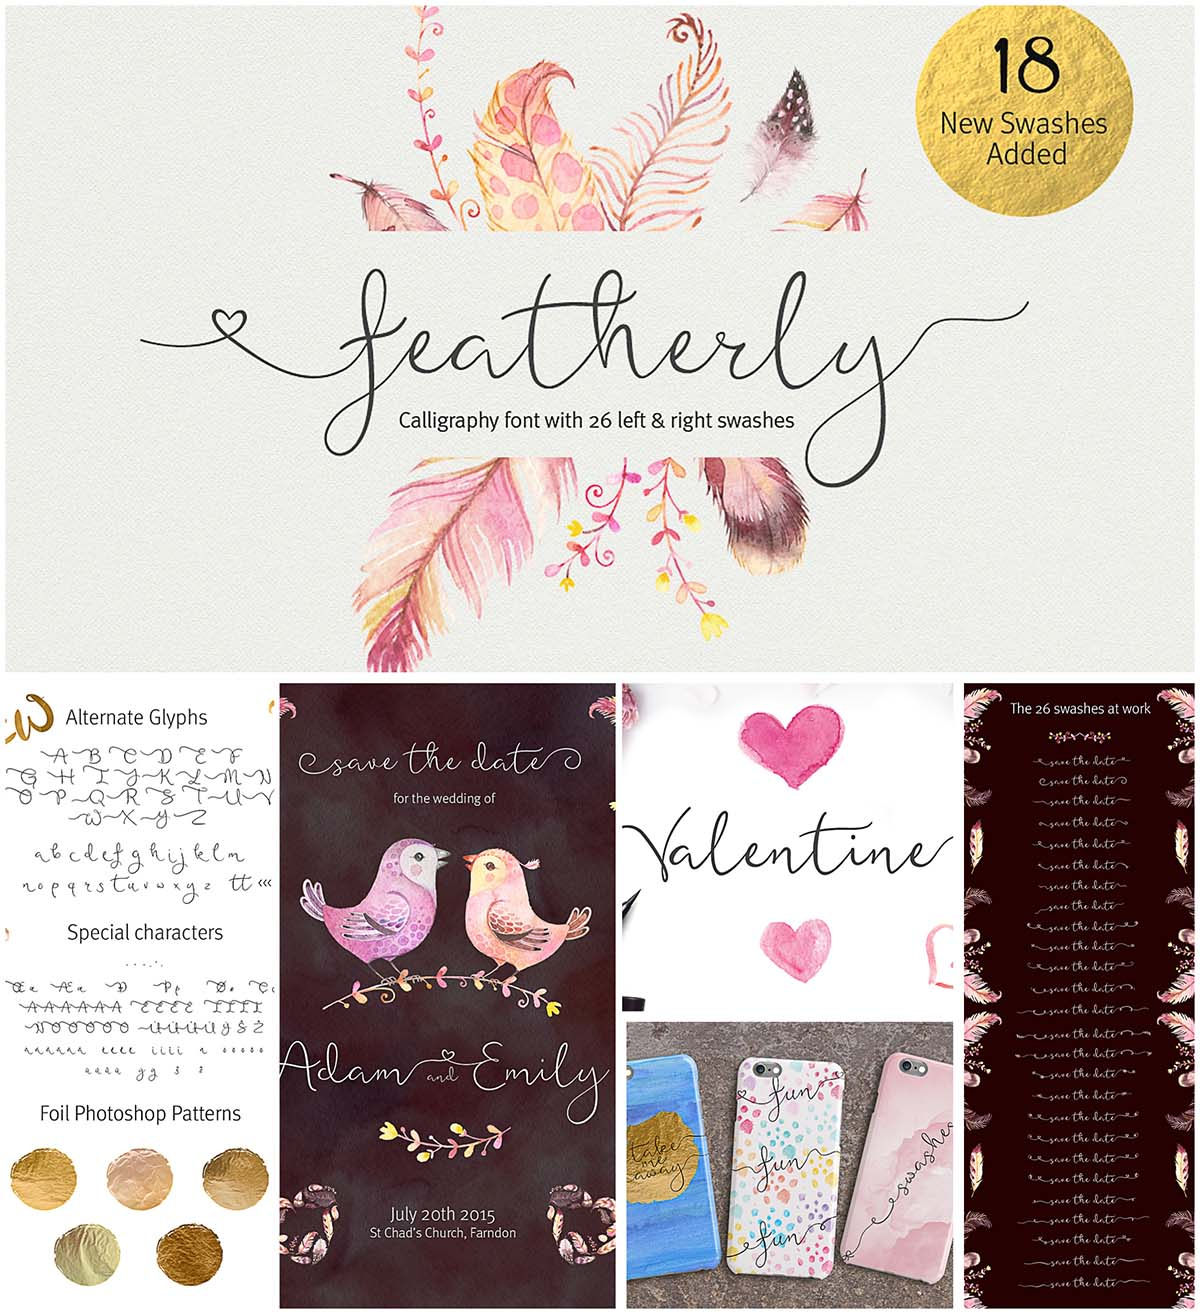 Featherly calligraphy font